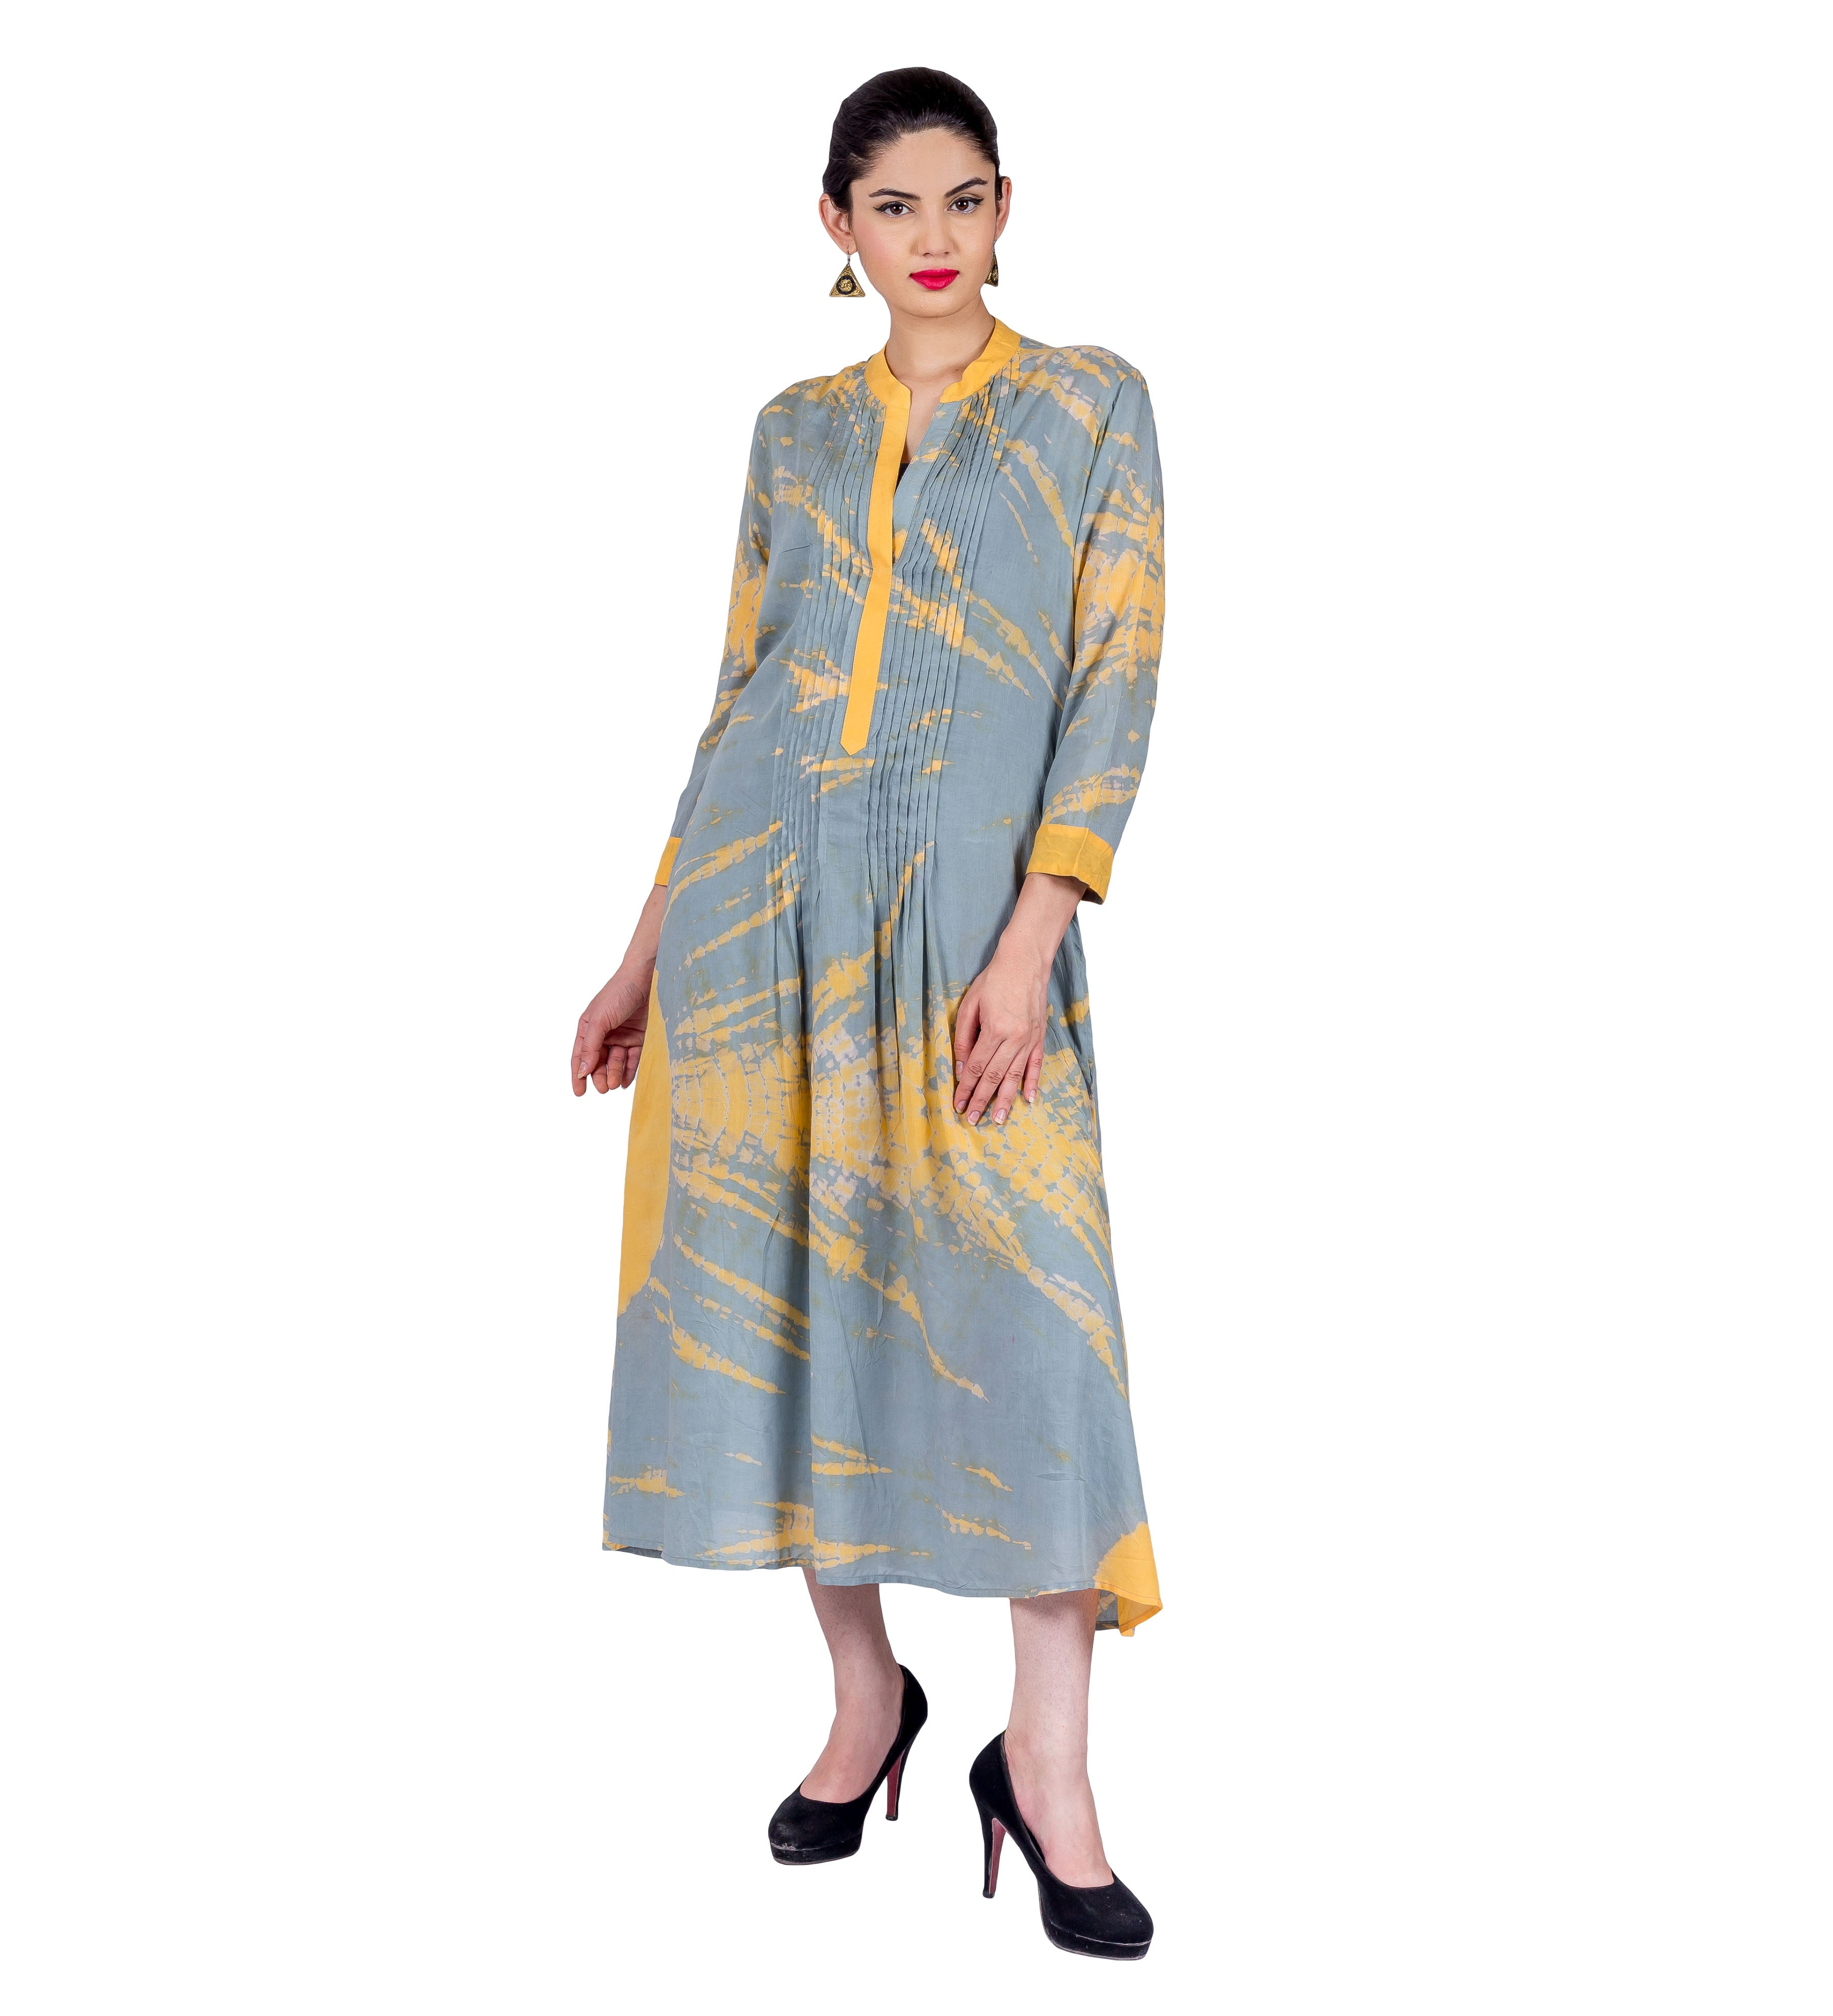 Grey / Yellow Pintuck Tie and Dye Indo Western Dress